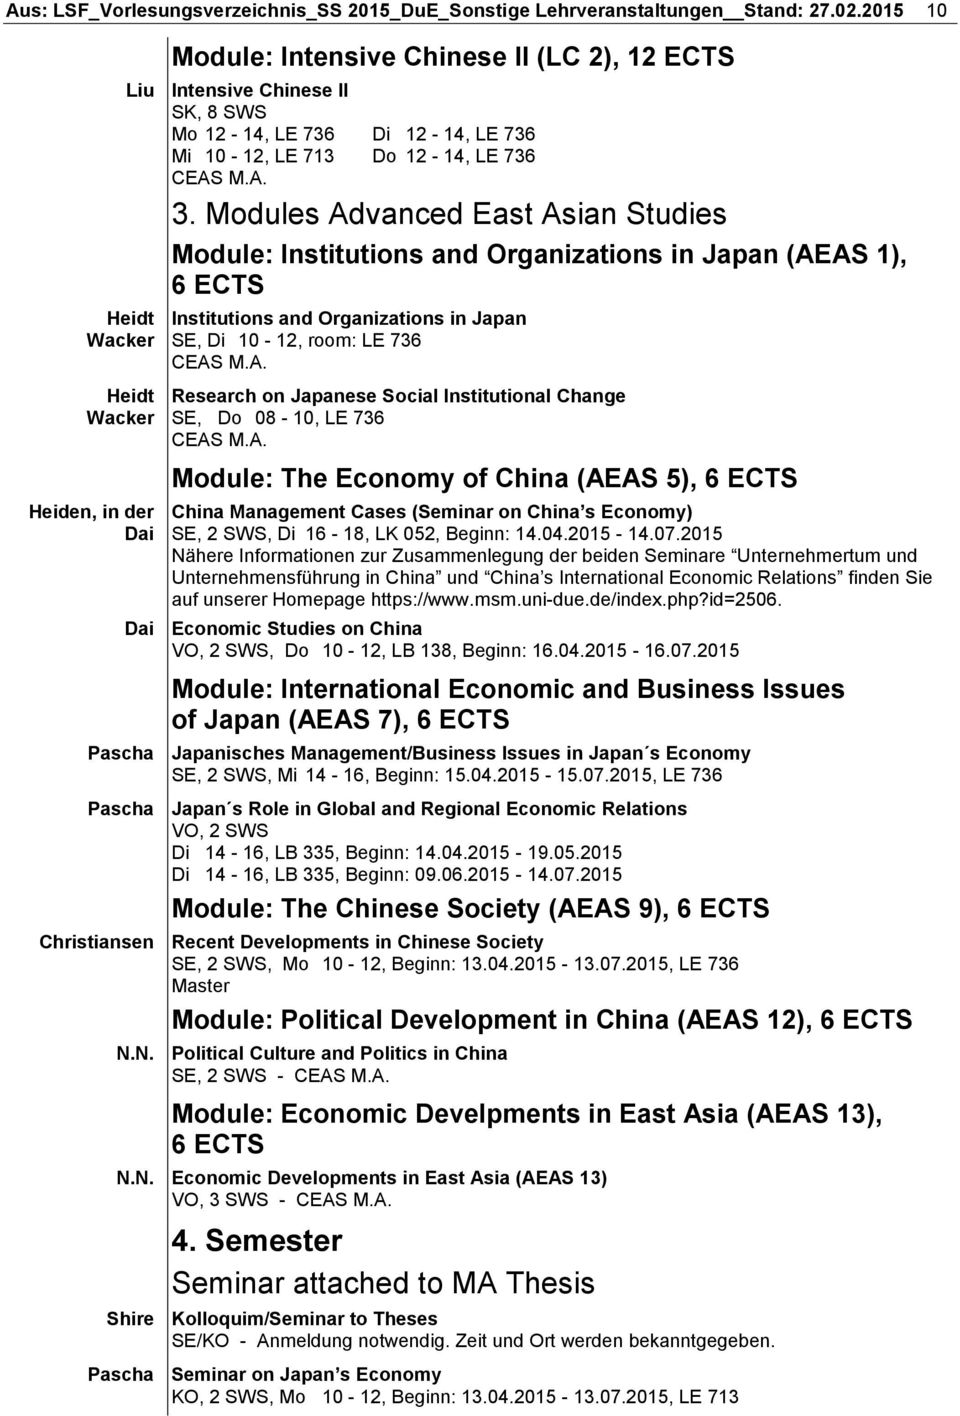 736 CEAS M.A. 3. Modules Advanced East Asian Studies Module: Institutions and Organizations in Japan (AEAS 1), 6 ECTS Institutions and Organizations in Japan SE, Di 10-12, room: LE 736 CEAS M.A. Research on Japanese Social Institutional Change SE, Do 08-10, LE 736 CEAS M.